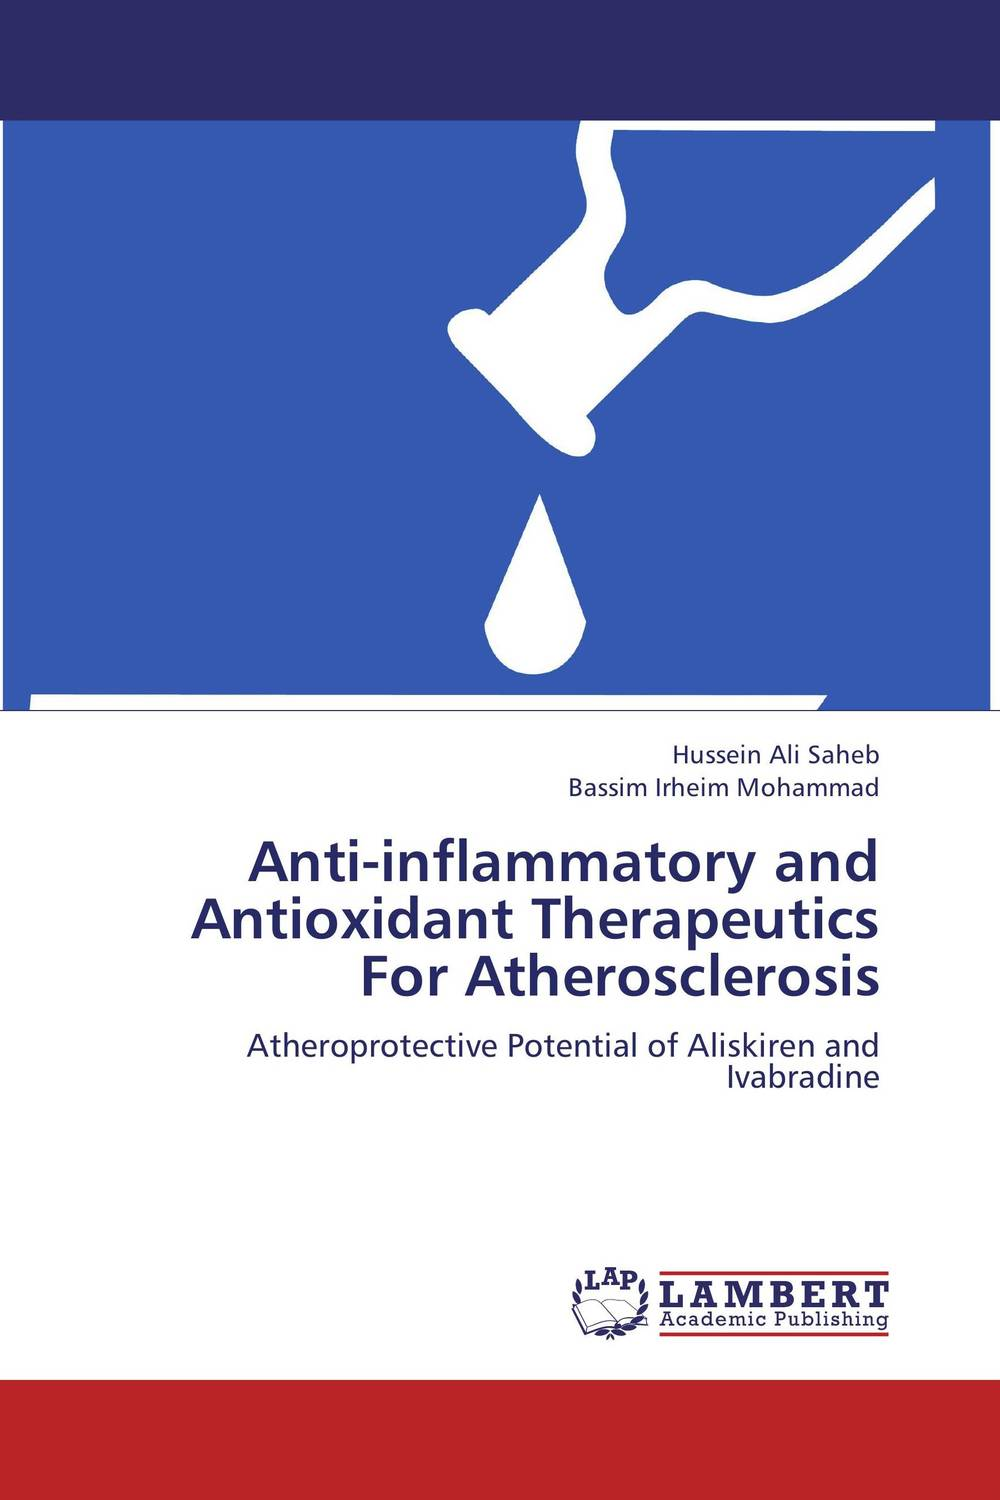 Anti-inflammatory and Antioxidant Therapeutics For Atherosclerosis buccoadhesive bilayer tablets for treatment of hypertension